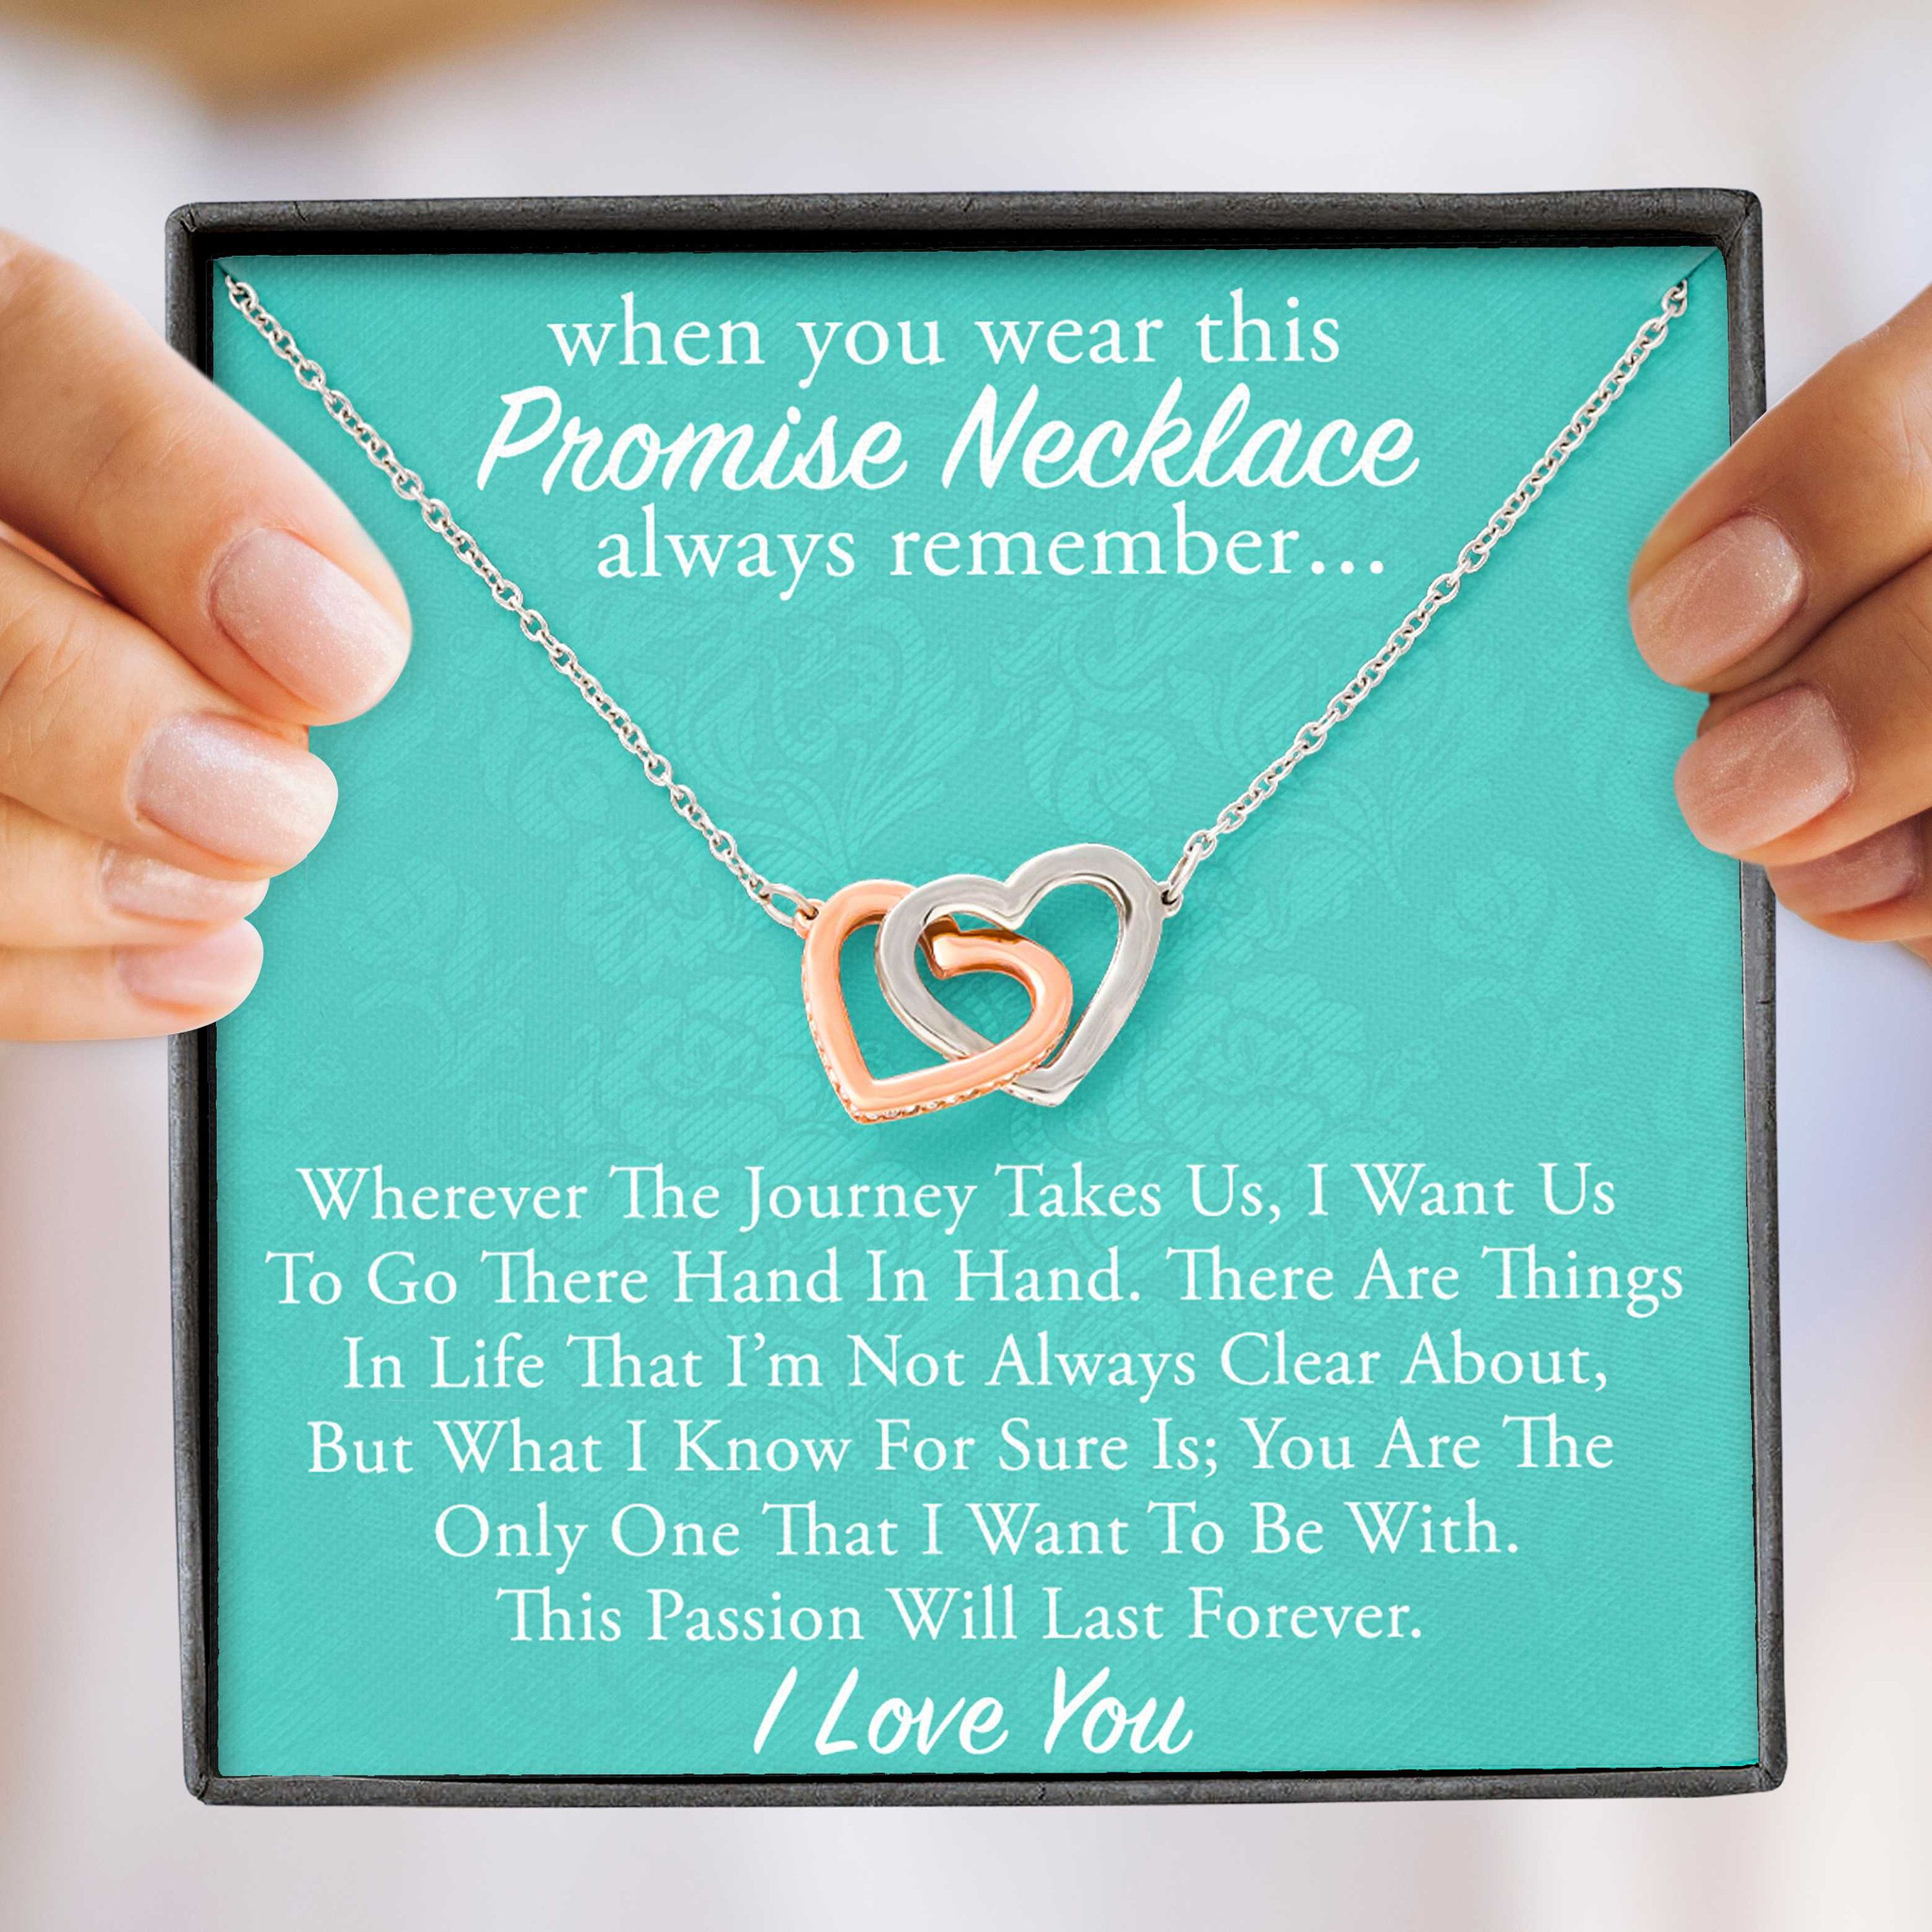 """""""Promise Necklace for Future Wife, Engagement Gift for Future Wife, Sentimental Gift for Bride from Groom, Birthday Gift for Fiancee, Fiance ------------------------------------------------------------------------ The Perfect Promise Necklace For Her! The interlocking hearts are a symbol of never-ending love between two close individuals. Surprise your true love with this beautiful piece. Make a great necklace for girlfriend. Necklace Message Card Reads: \""""When you wear this promise necklace, al"""